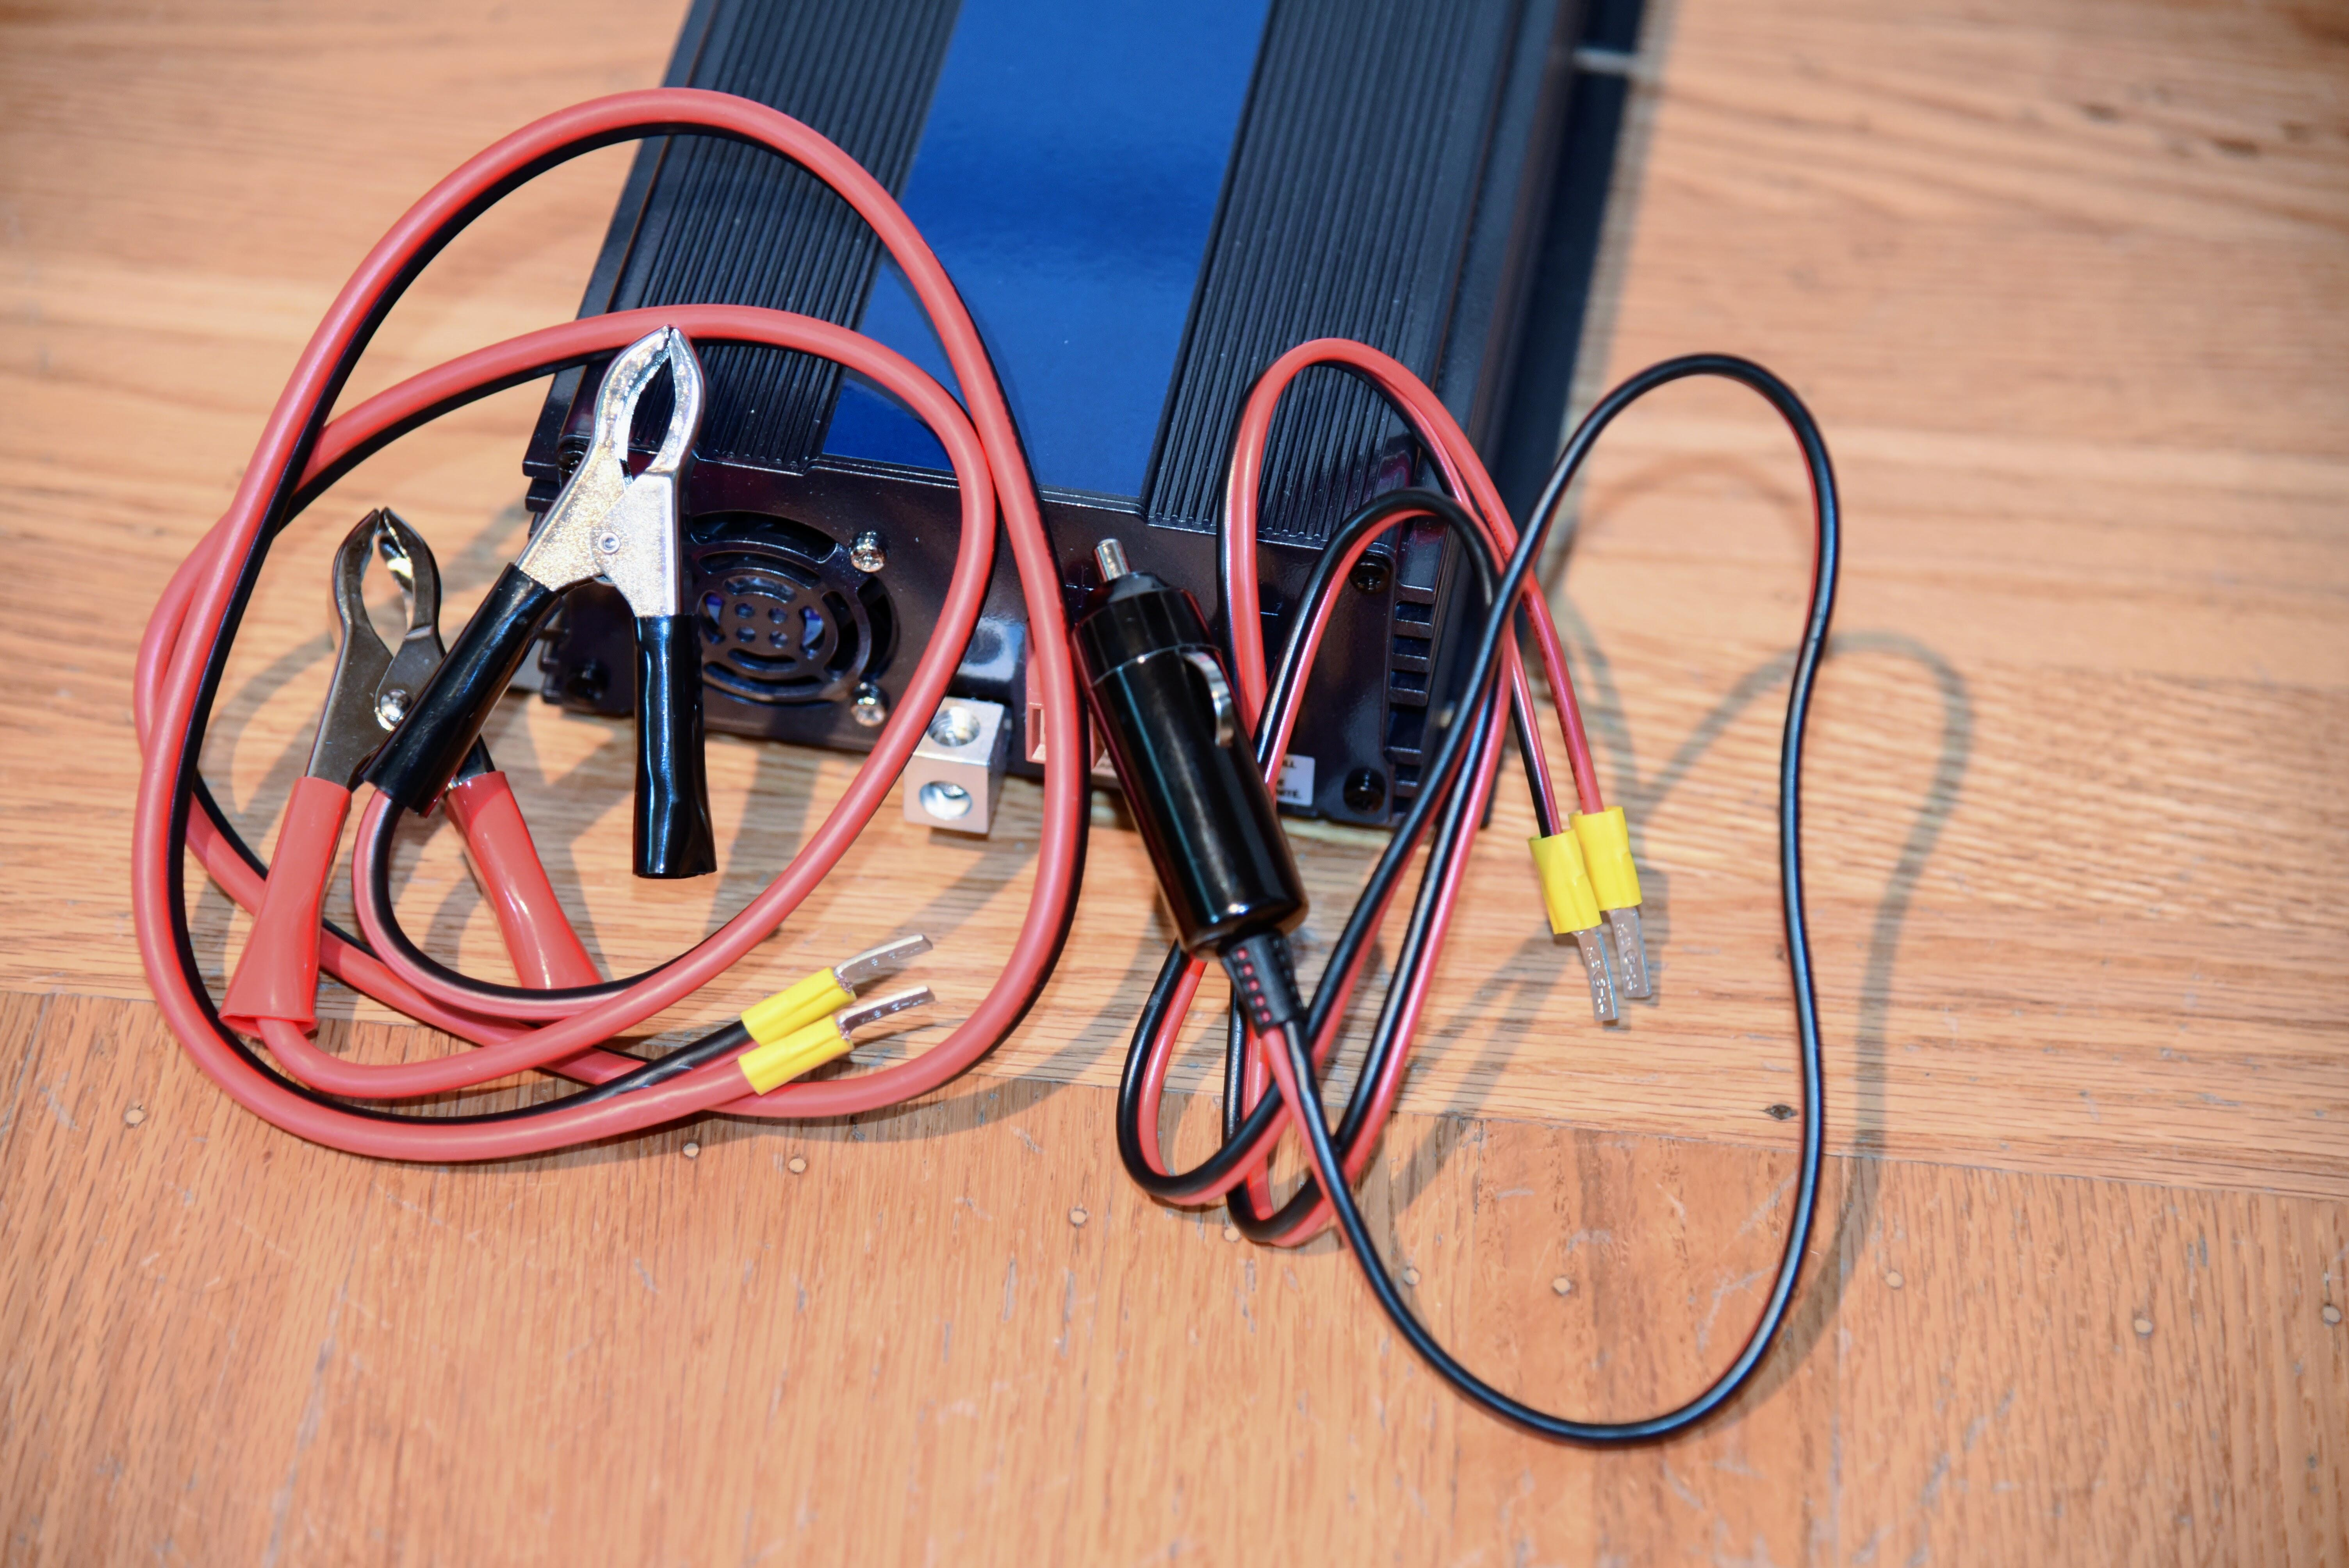 DC power inverter cables